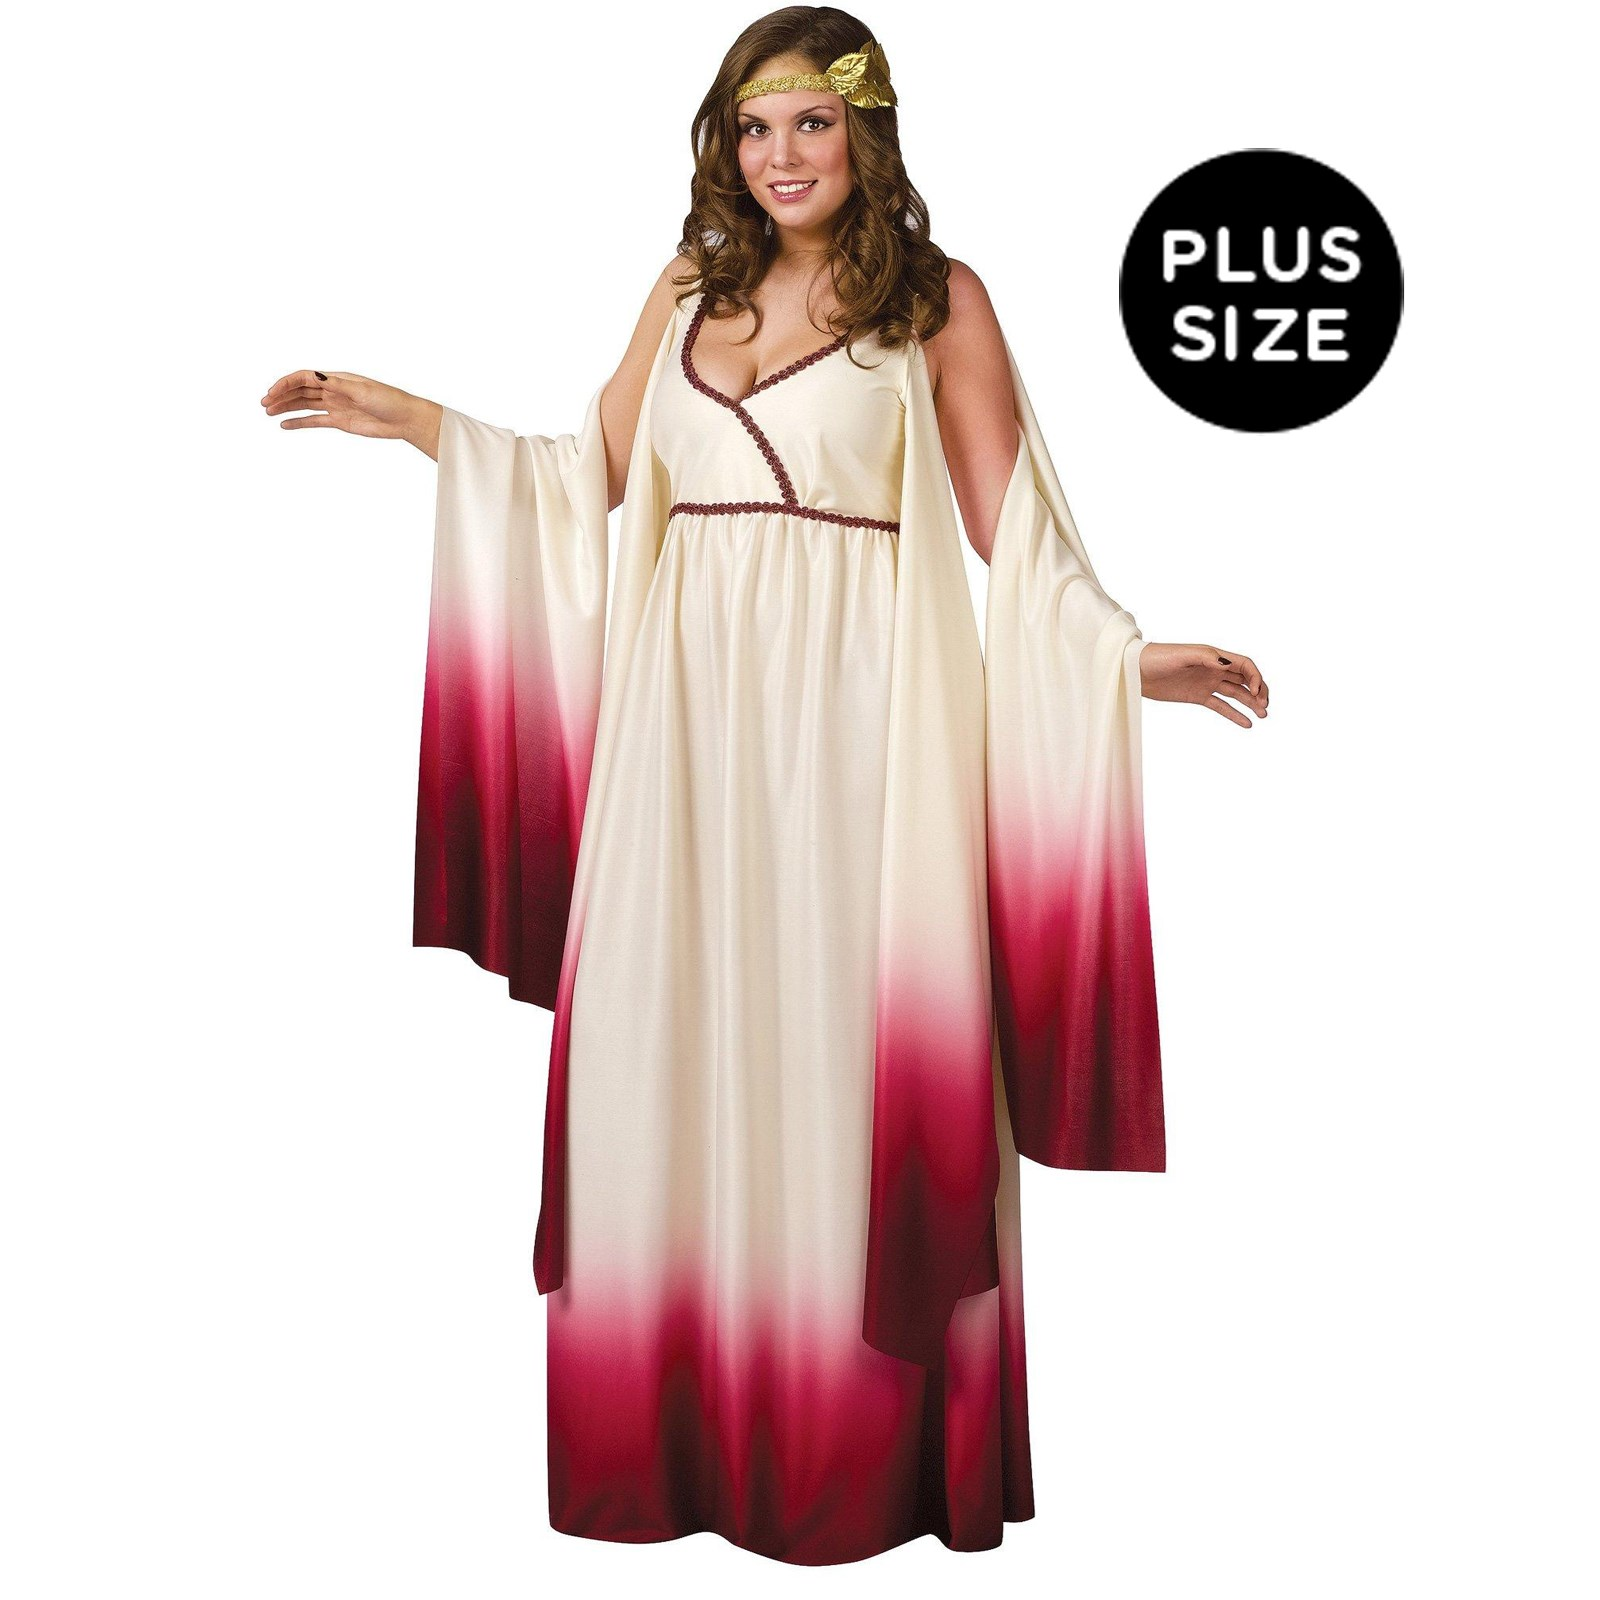 Venus Goddess of Love Adult Plus Costume